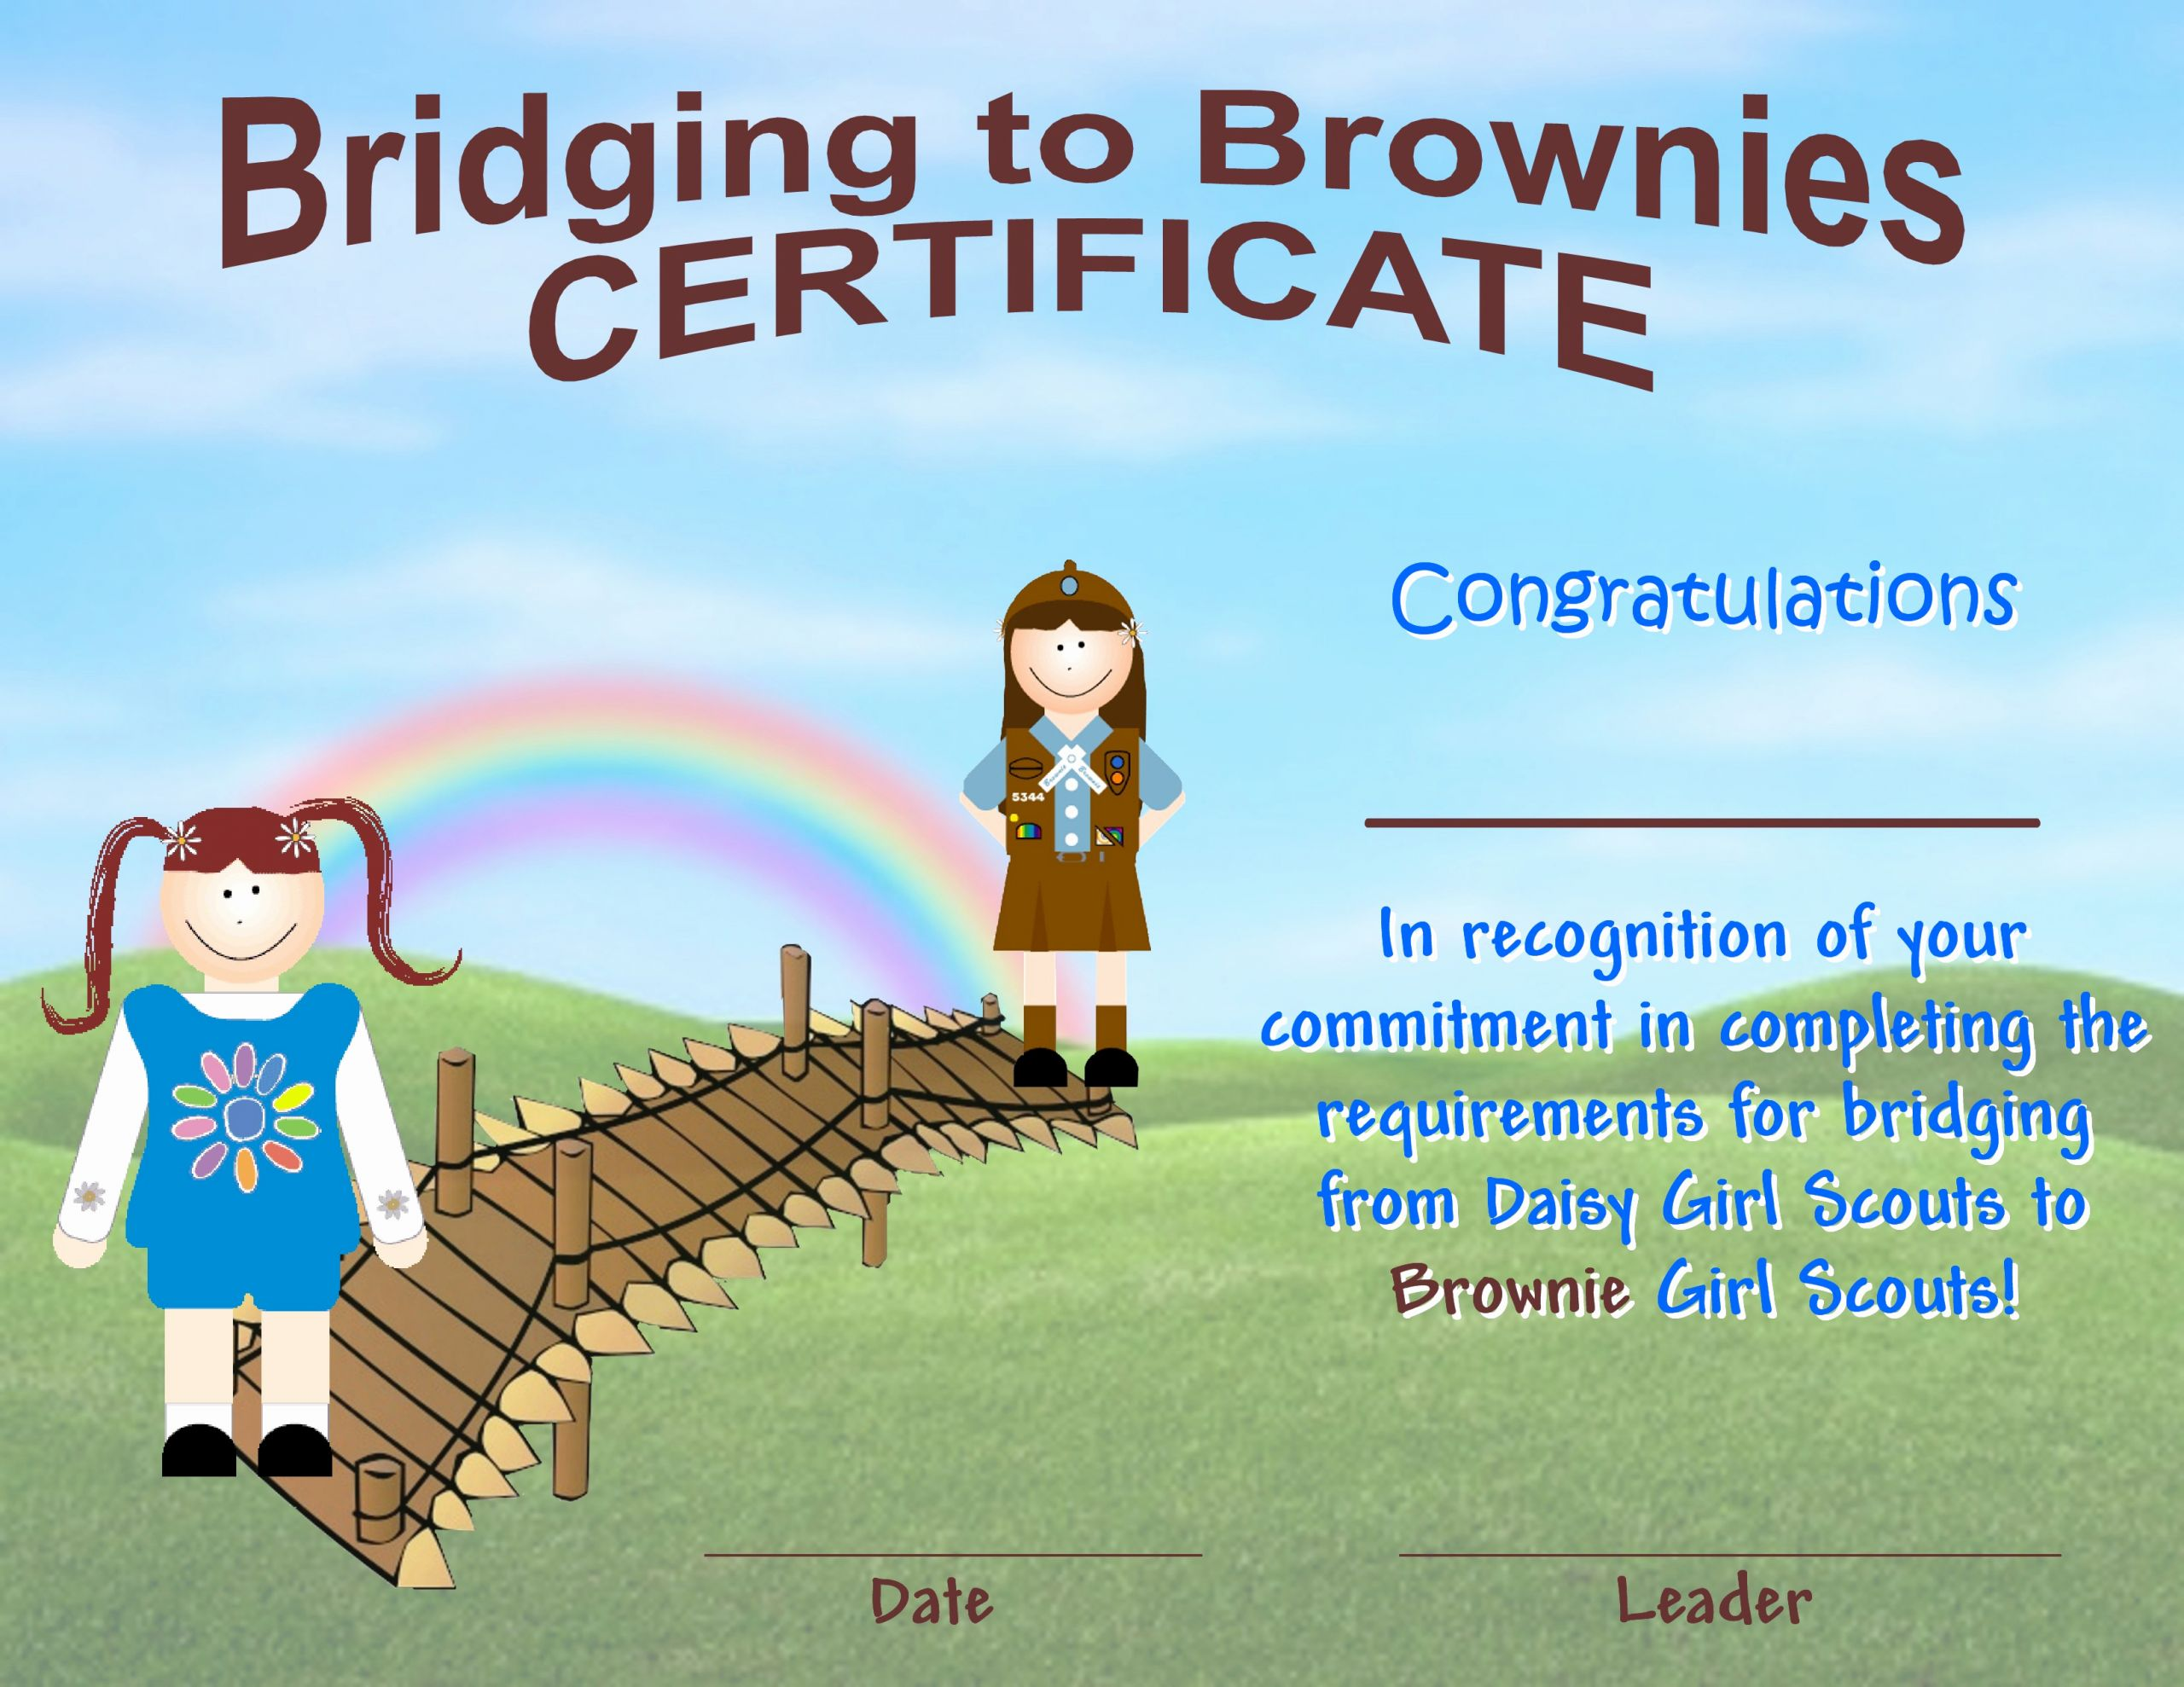 Girl Scout Certificate Template Luxury Bridging Clipart Girl Scout Png and Cliparts for Free